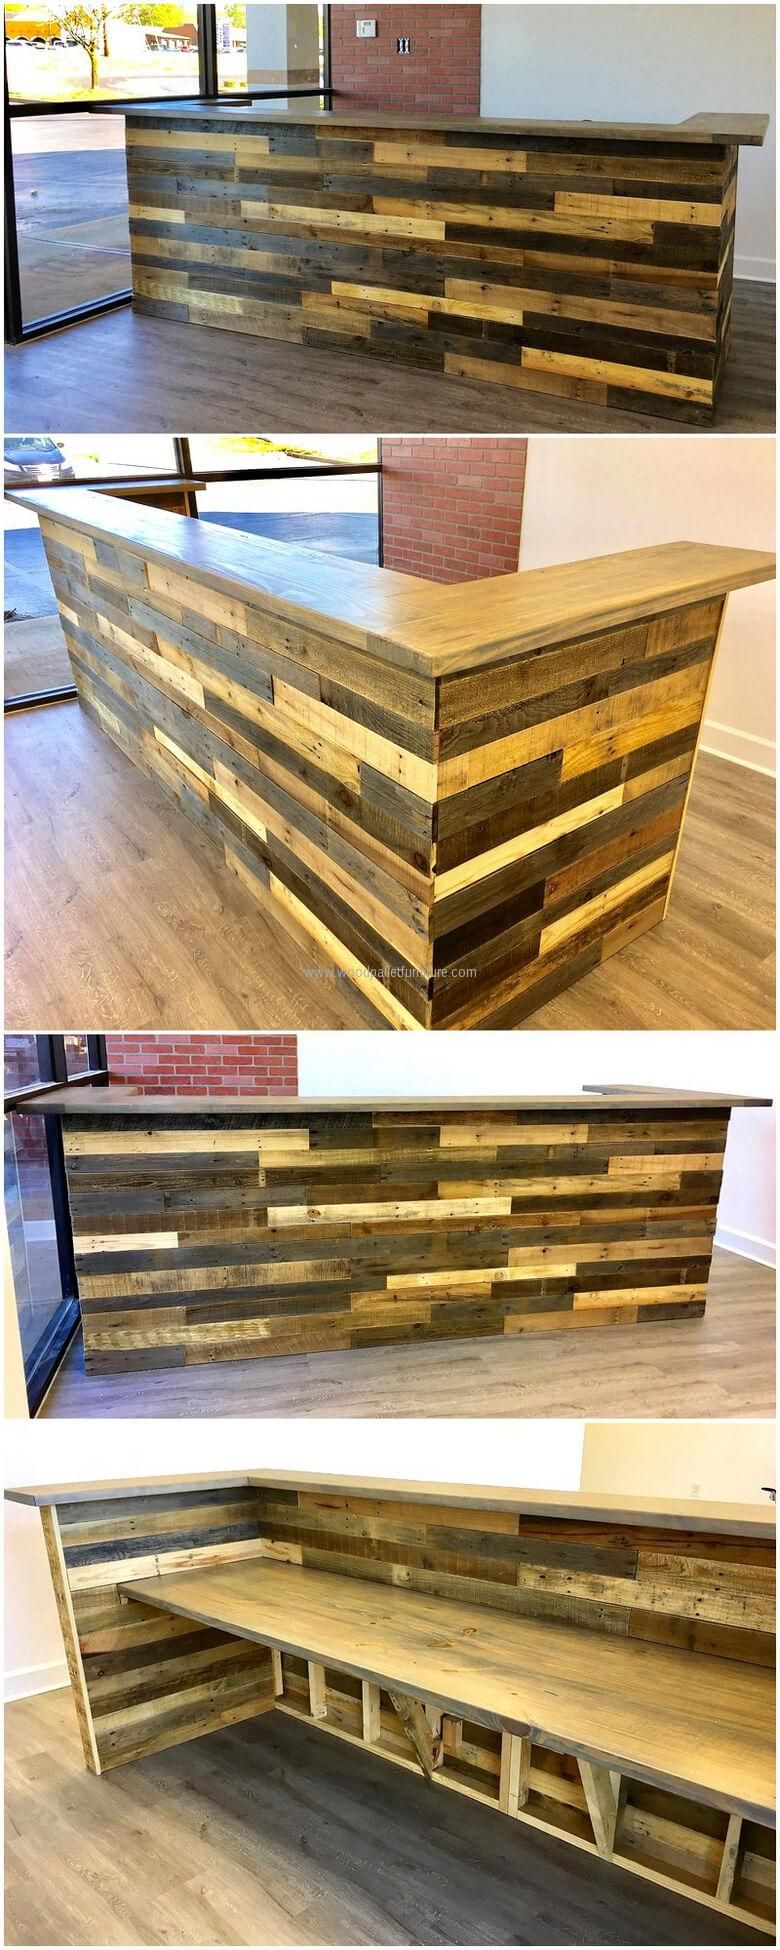 buy pallet furniture. Let Us Start With The Office Furniture Needs, Here You Can See A Neatly Created Buy Pallet O